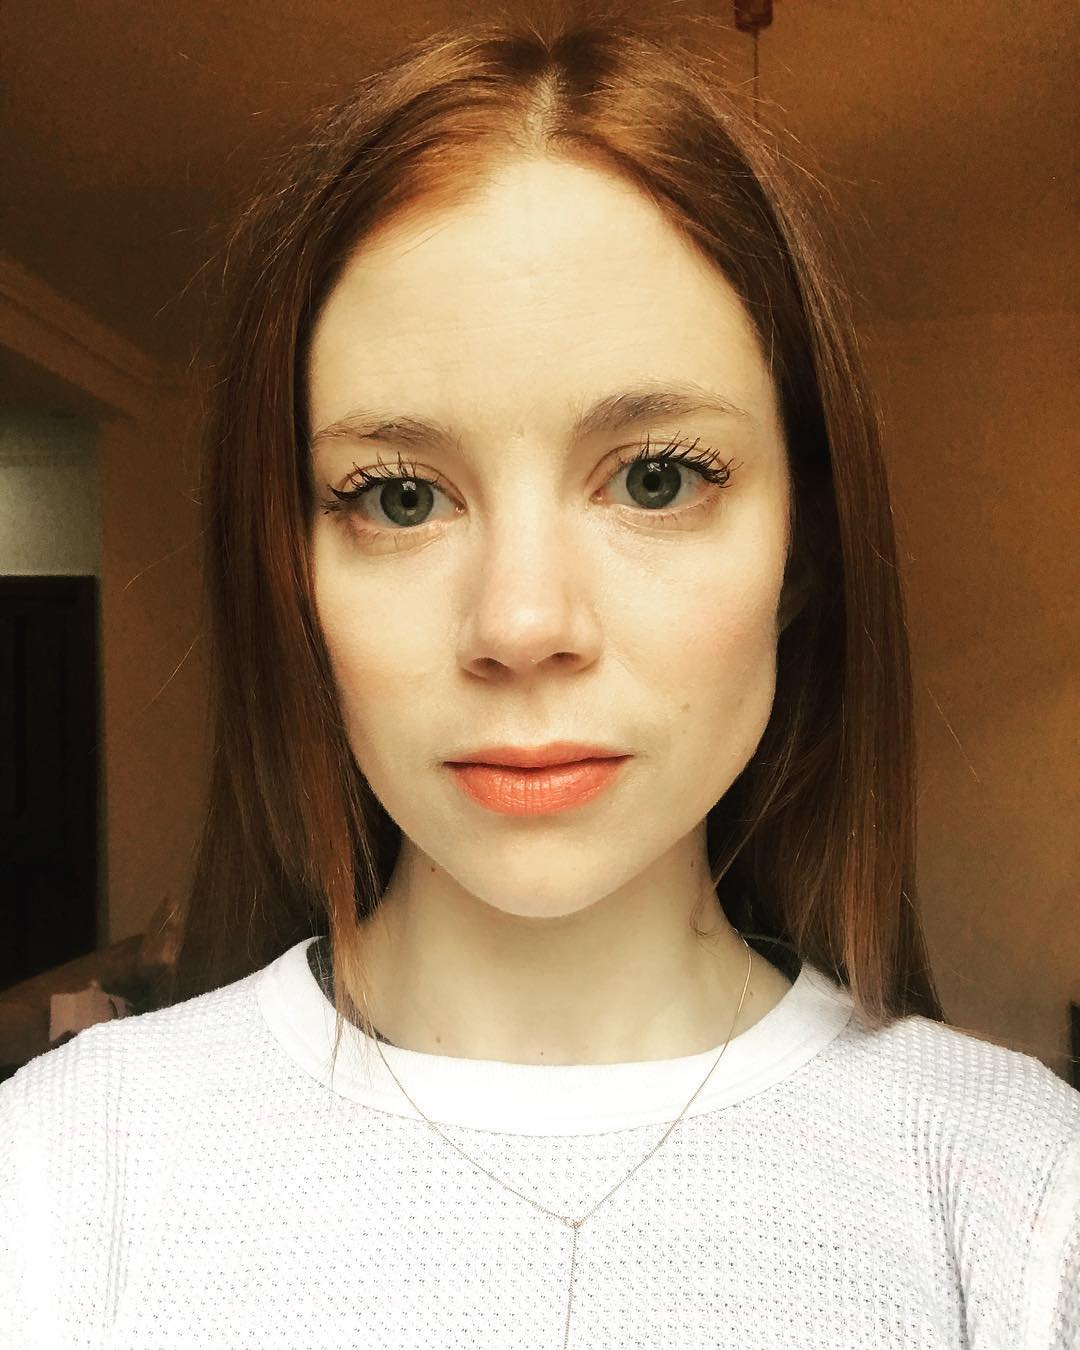 Charlotte Hope Hot Pictures, Bikini And Fashion Style (49 Photos)